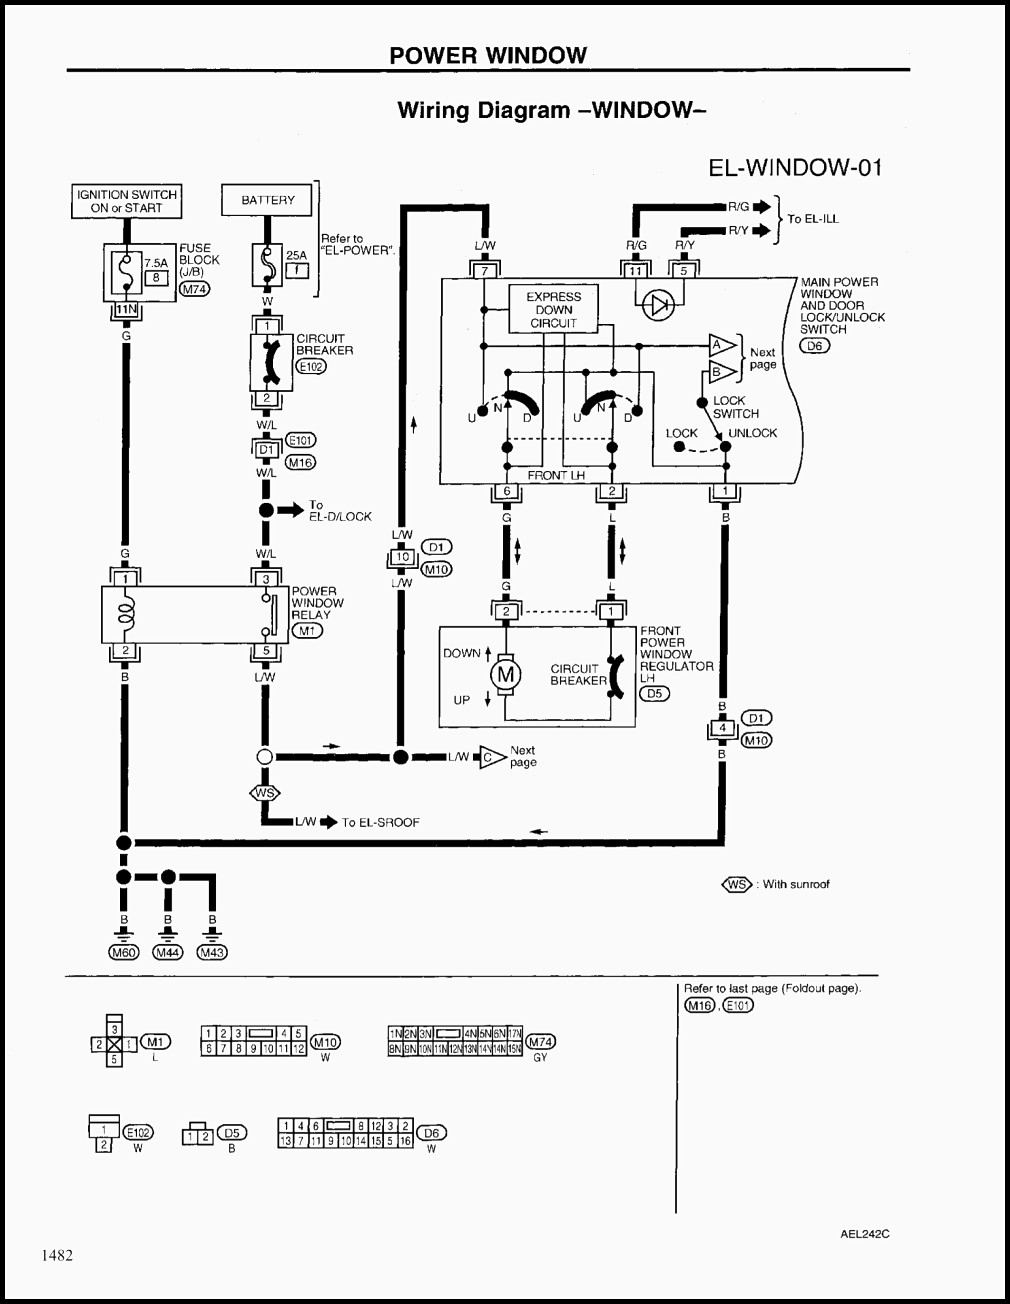 Renault Megane Window Wiring Diagram Wiring Library Power